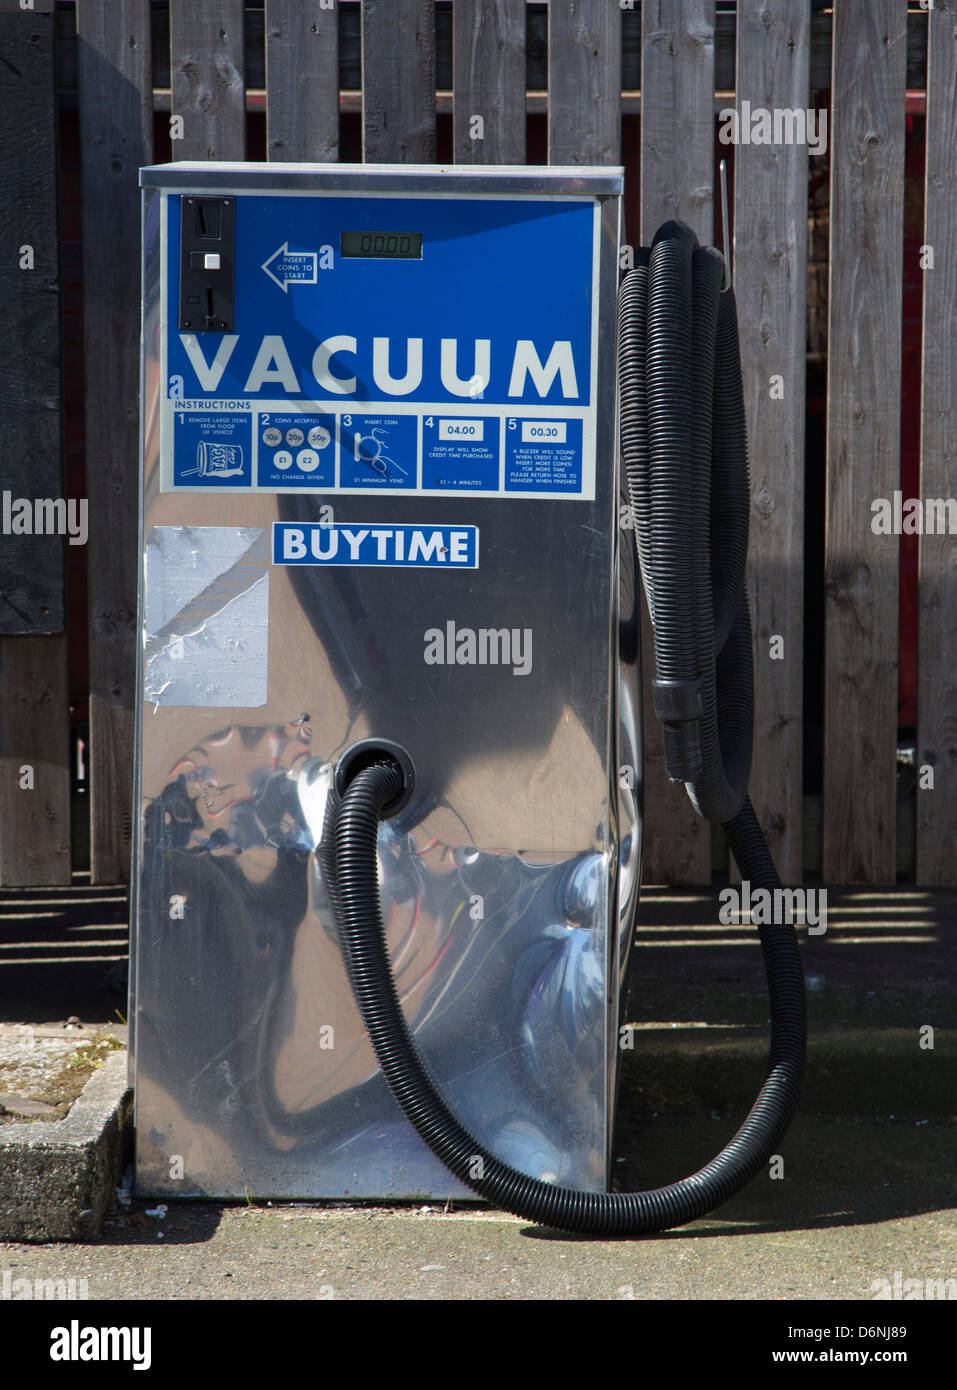 Garage Hoover Vacuum Vacuum Garage Coin Operated Car Cleaning Buy Time Stock Photo